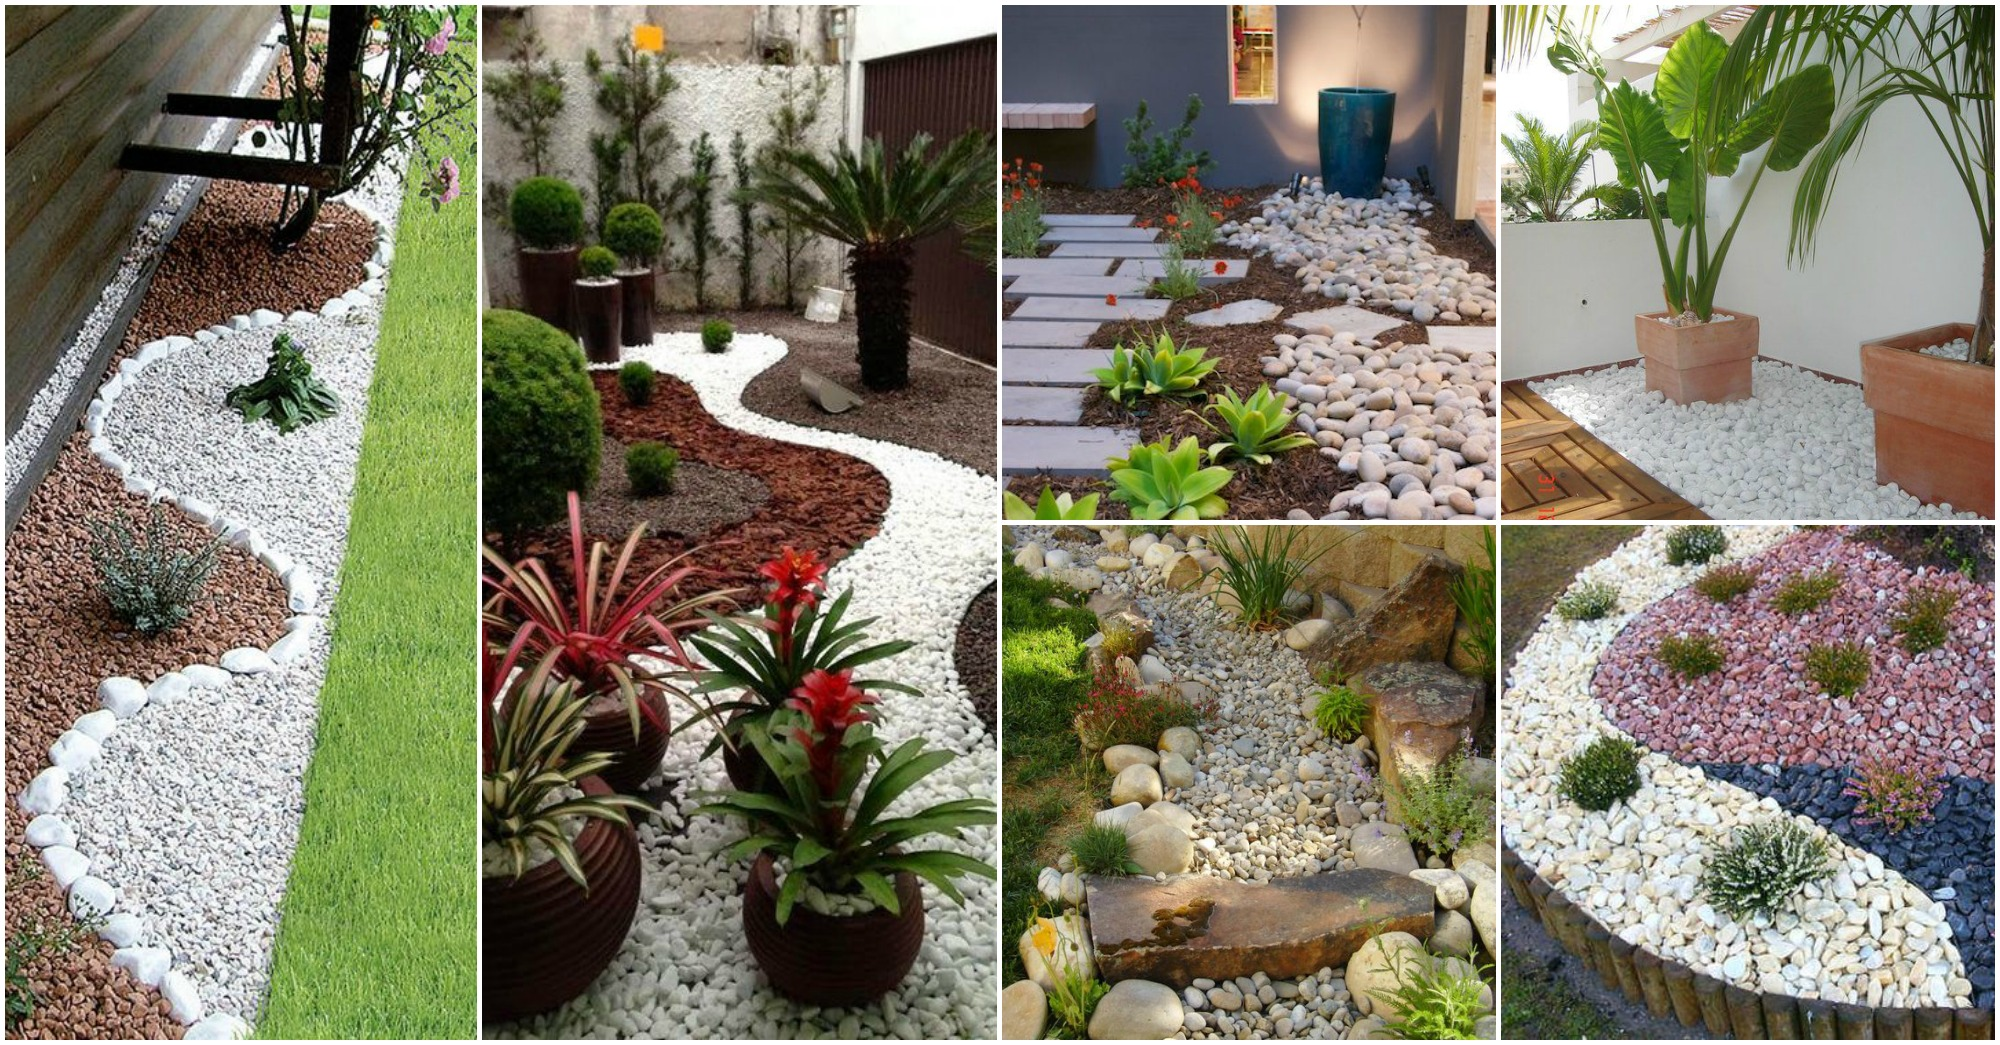 20 hermosas ideas para decorar tu jard n con piedras for Piedras de jardin decorativas